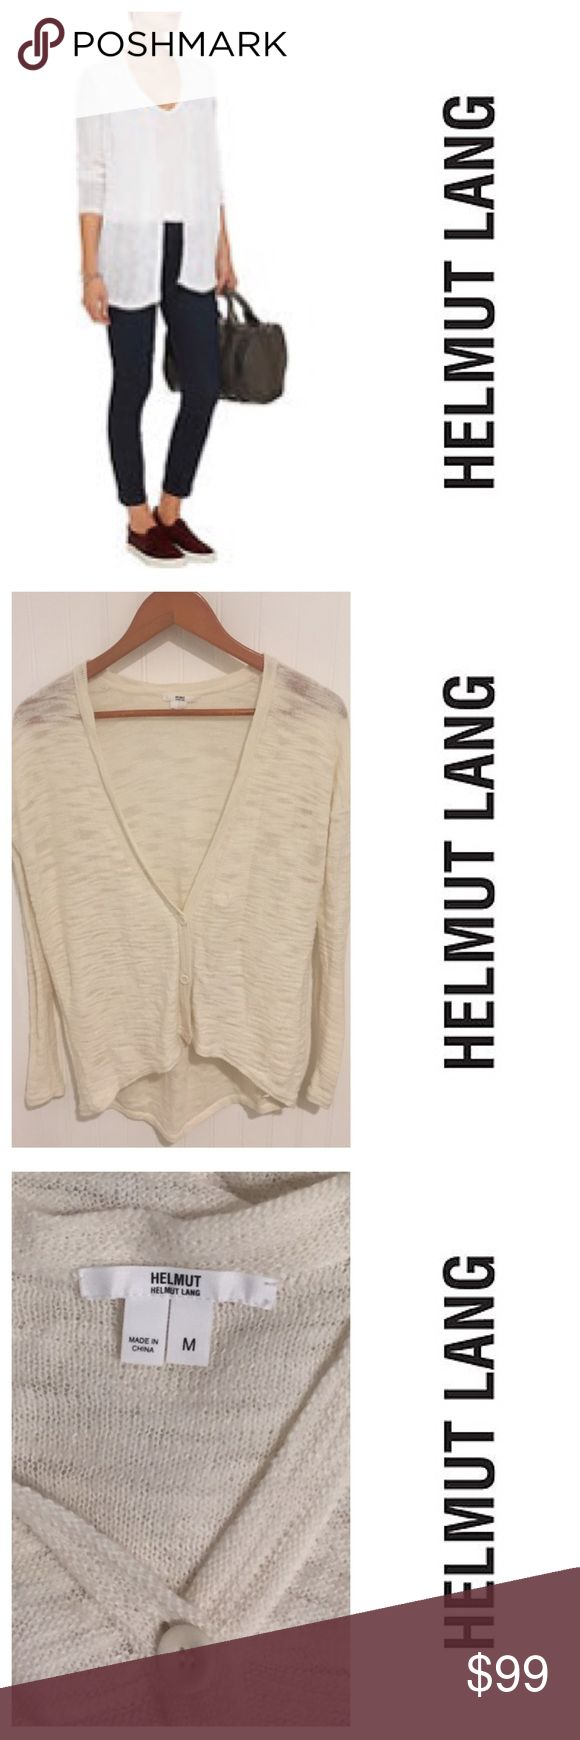 Helmut Lang white lightweight cardigan sweater M Size medium. Worn a few times but still in very good condition. See my closet for more great deals on designer items. 15% off a bundle of three or more items. Helmut Lang Sweaters Cardigans